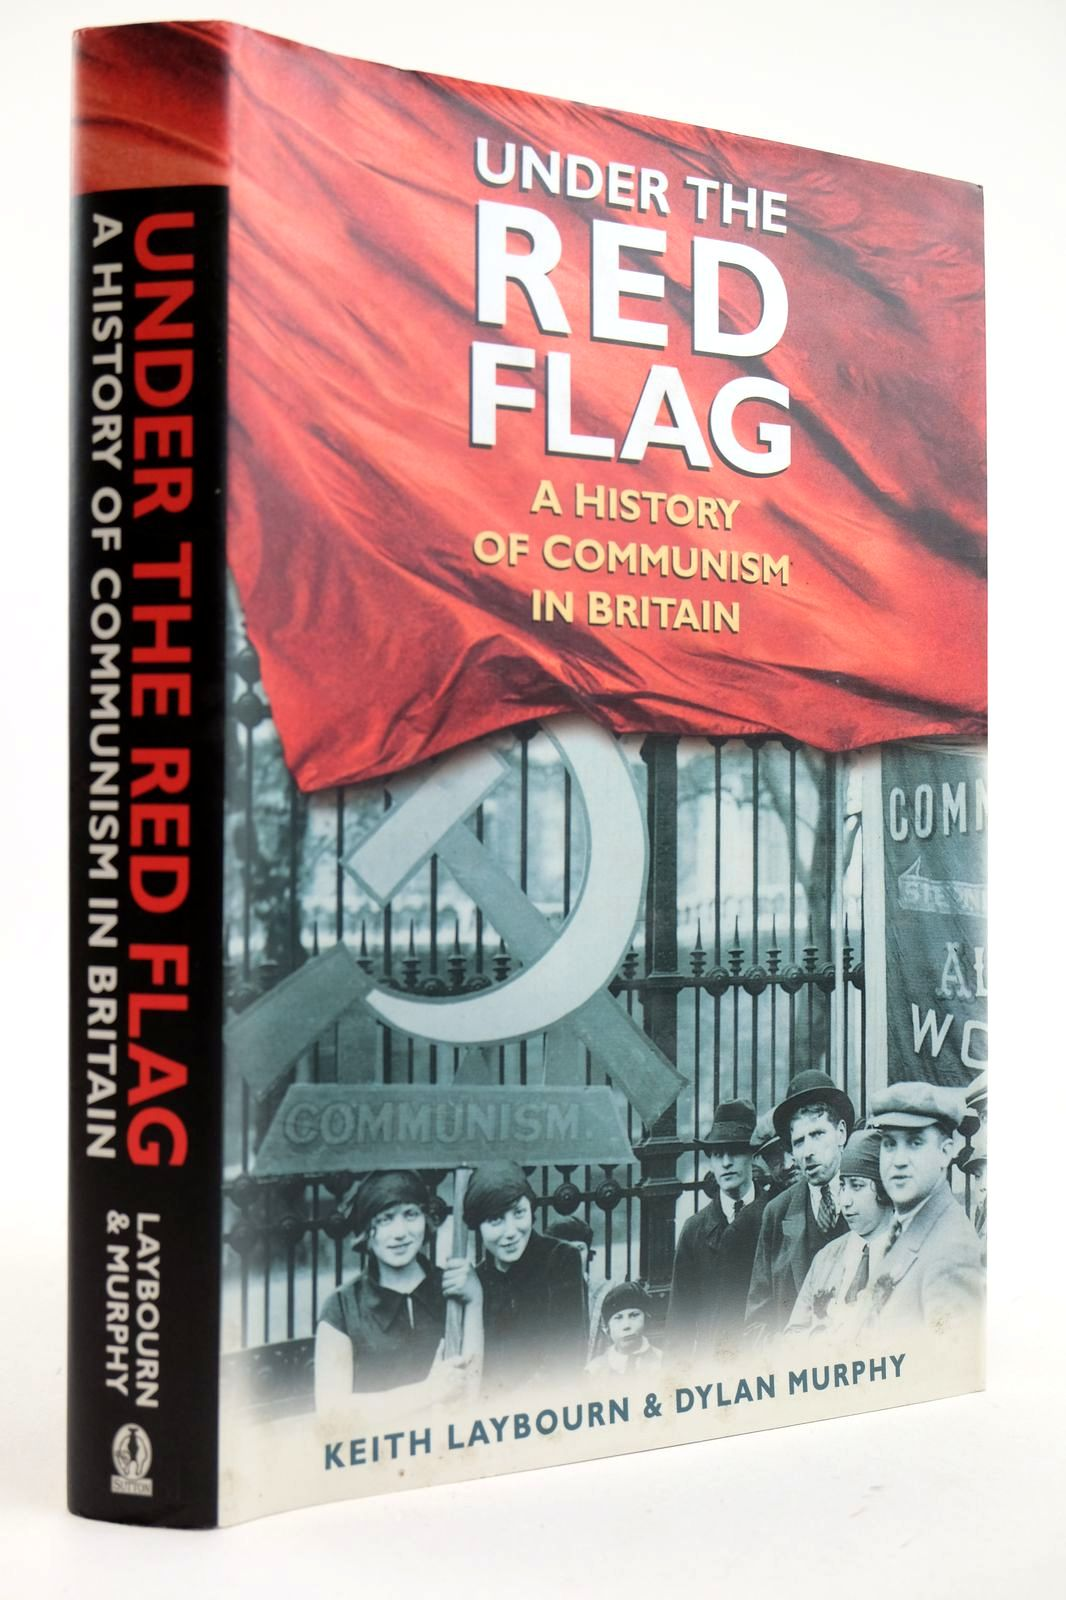 Photo of UNDER THE RED FLAG A HISTORY OF COMMUNISM IN BRITAIN, C. 1849-1991- Stock Number: 2132641